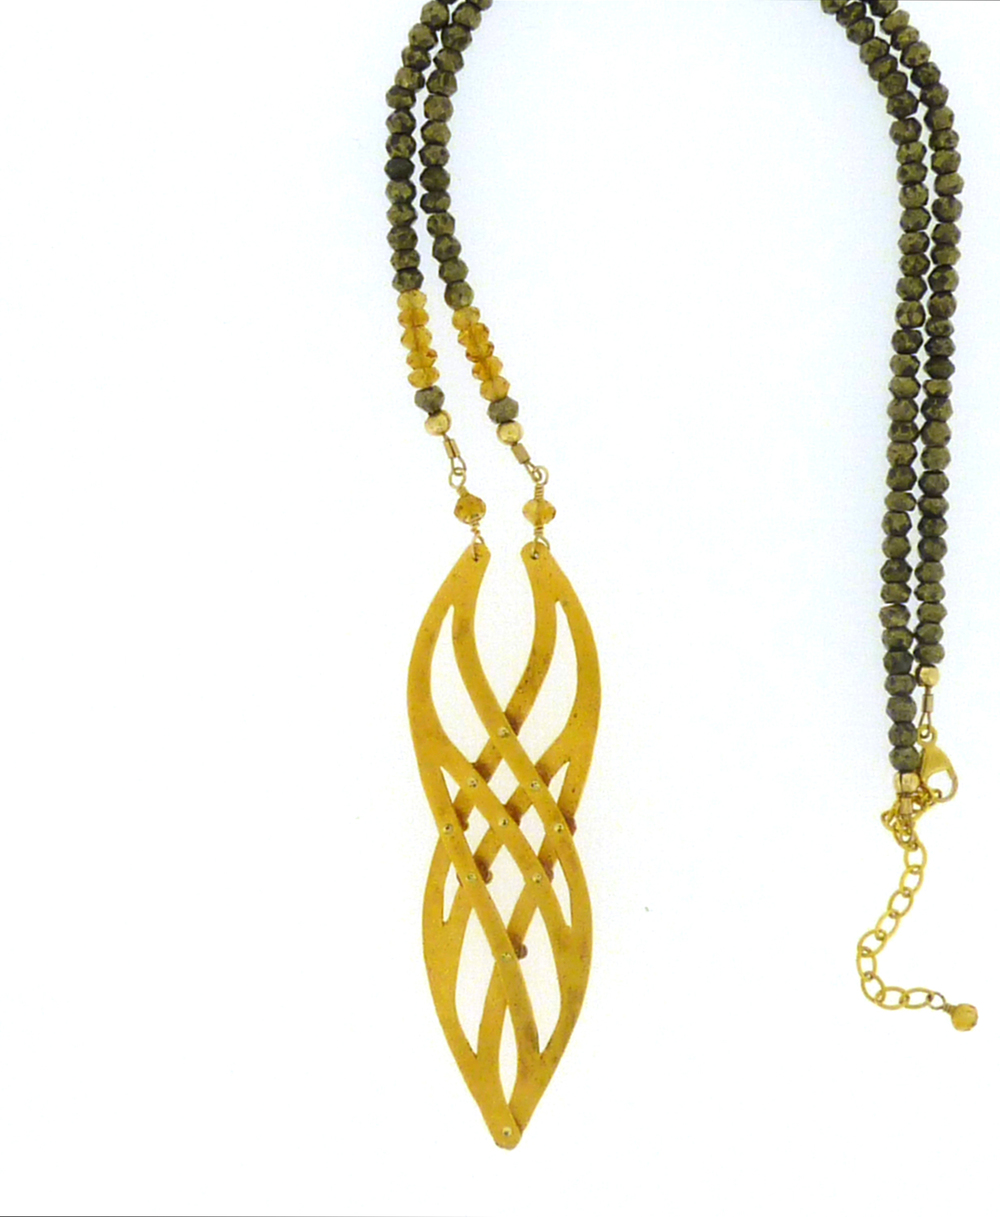 This version of the Infinity Necklace was made with two 24K Gold Vermeil pieces, accented with citrines on pyrite necklace.